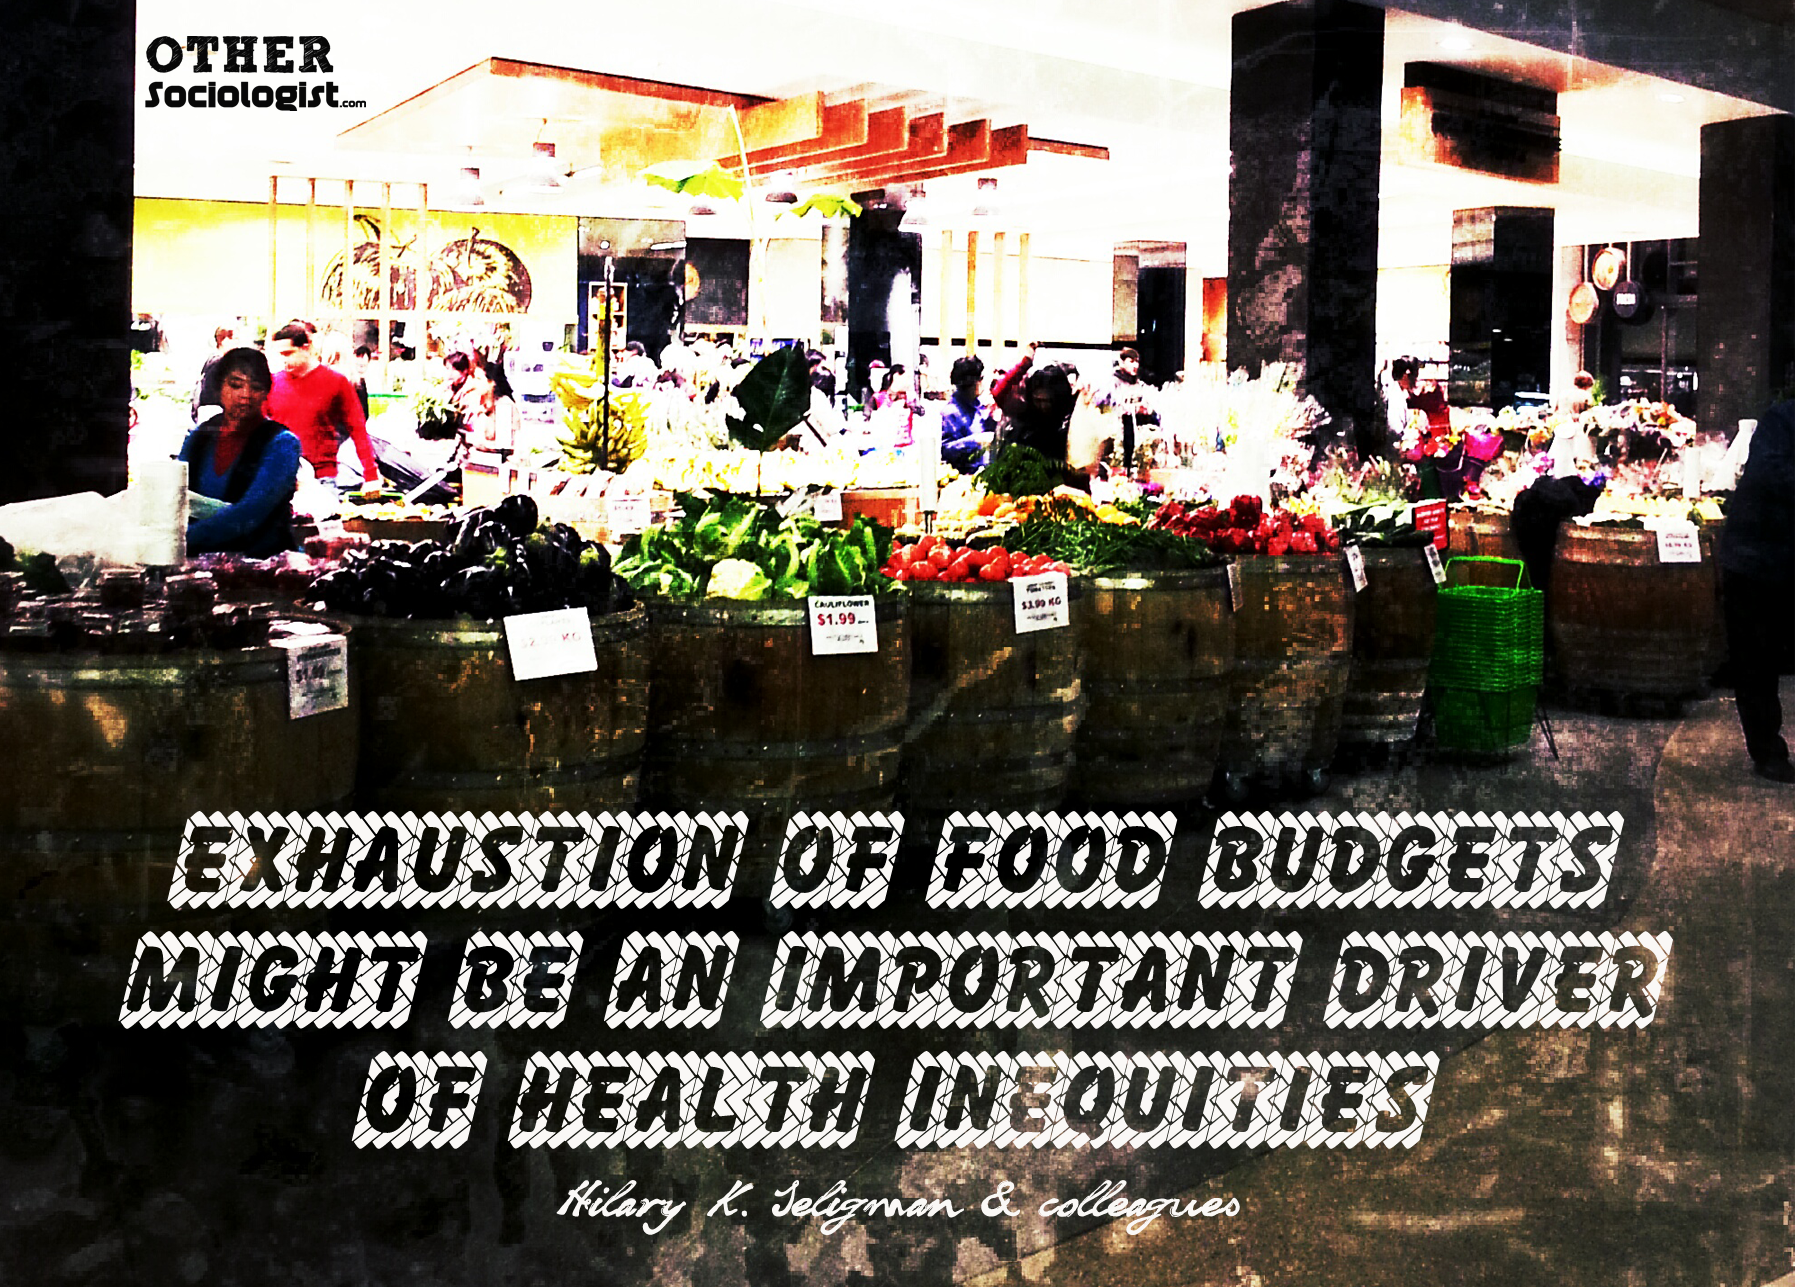 Exhaustion of food budgets is a driver of health inequality - The Other Sociologist